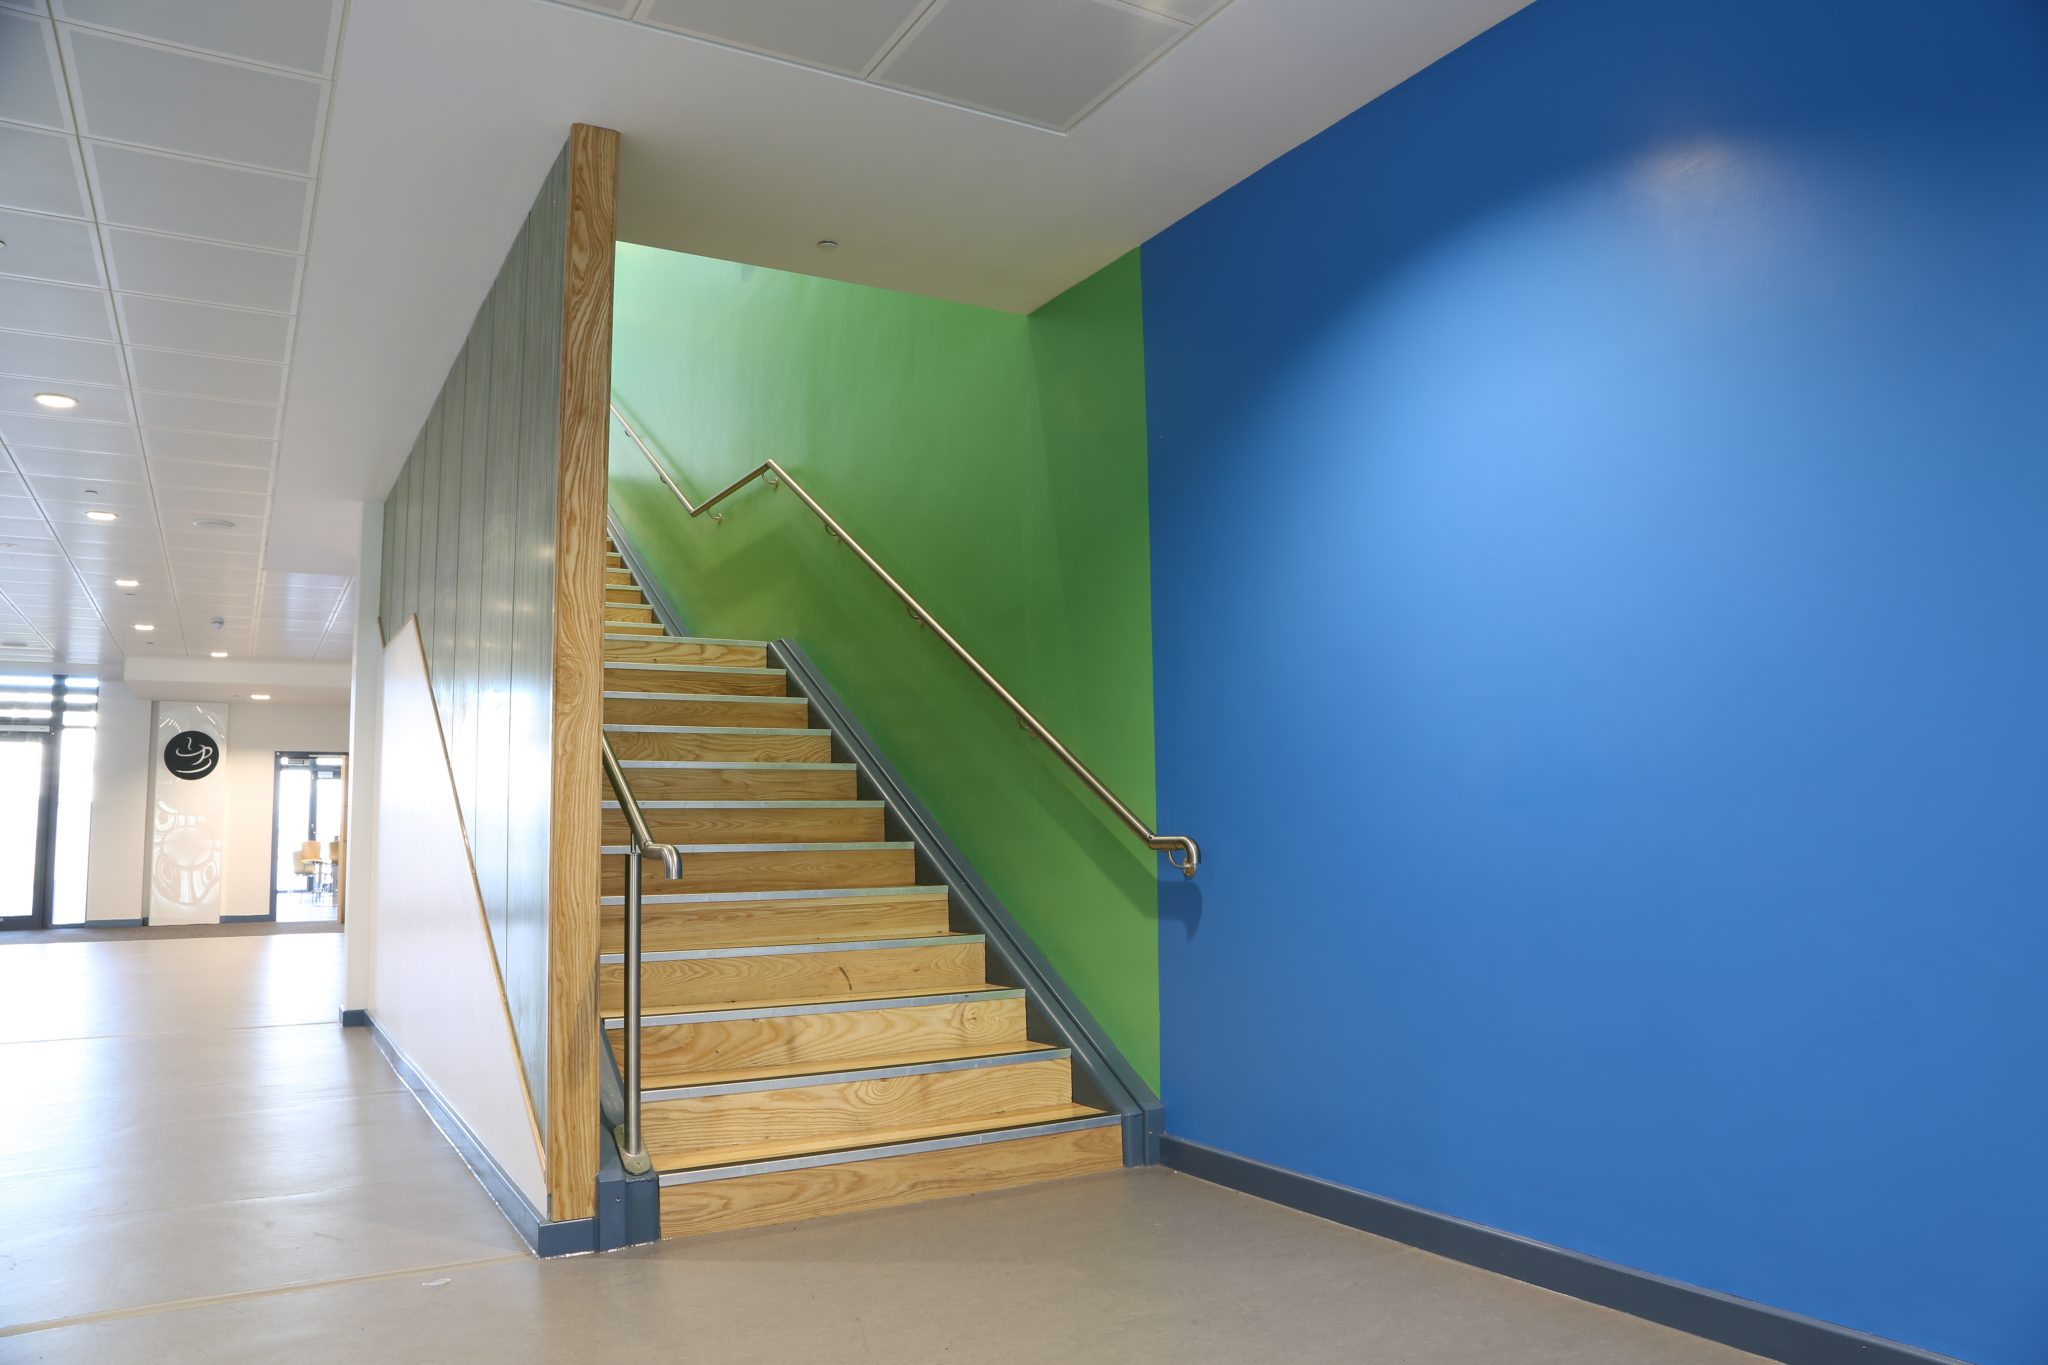 Multi Drywall Layers : British gypsum two coat plaster provides a cool solution